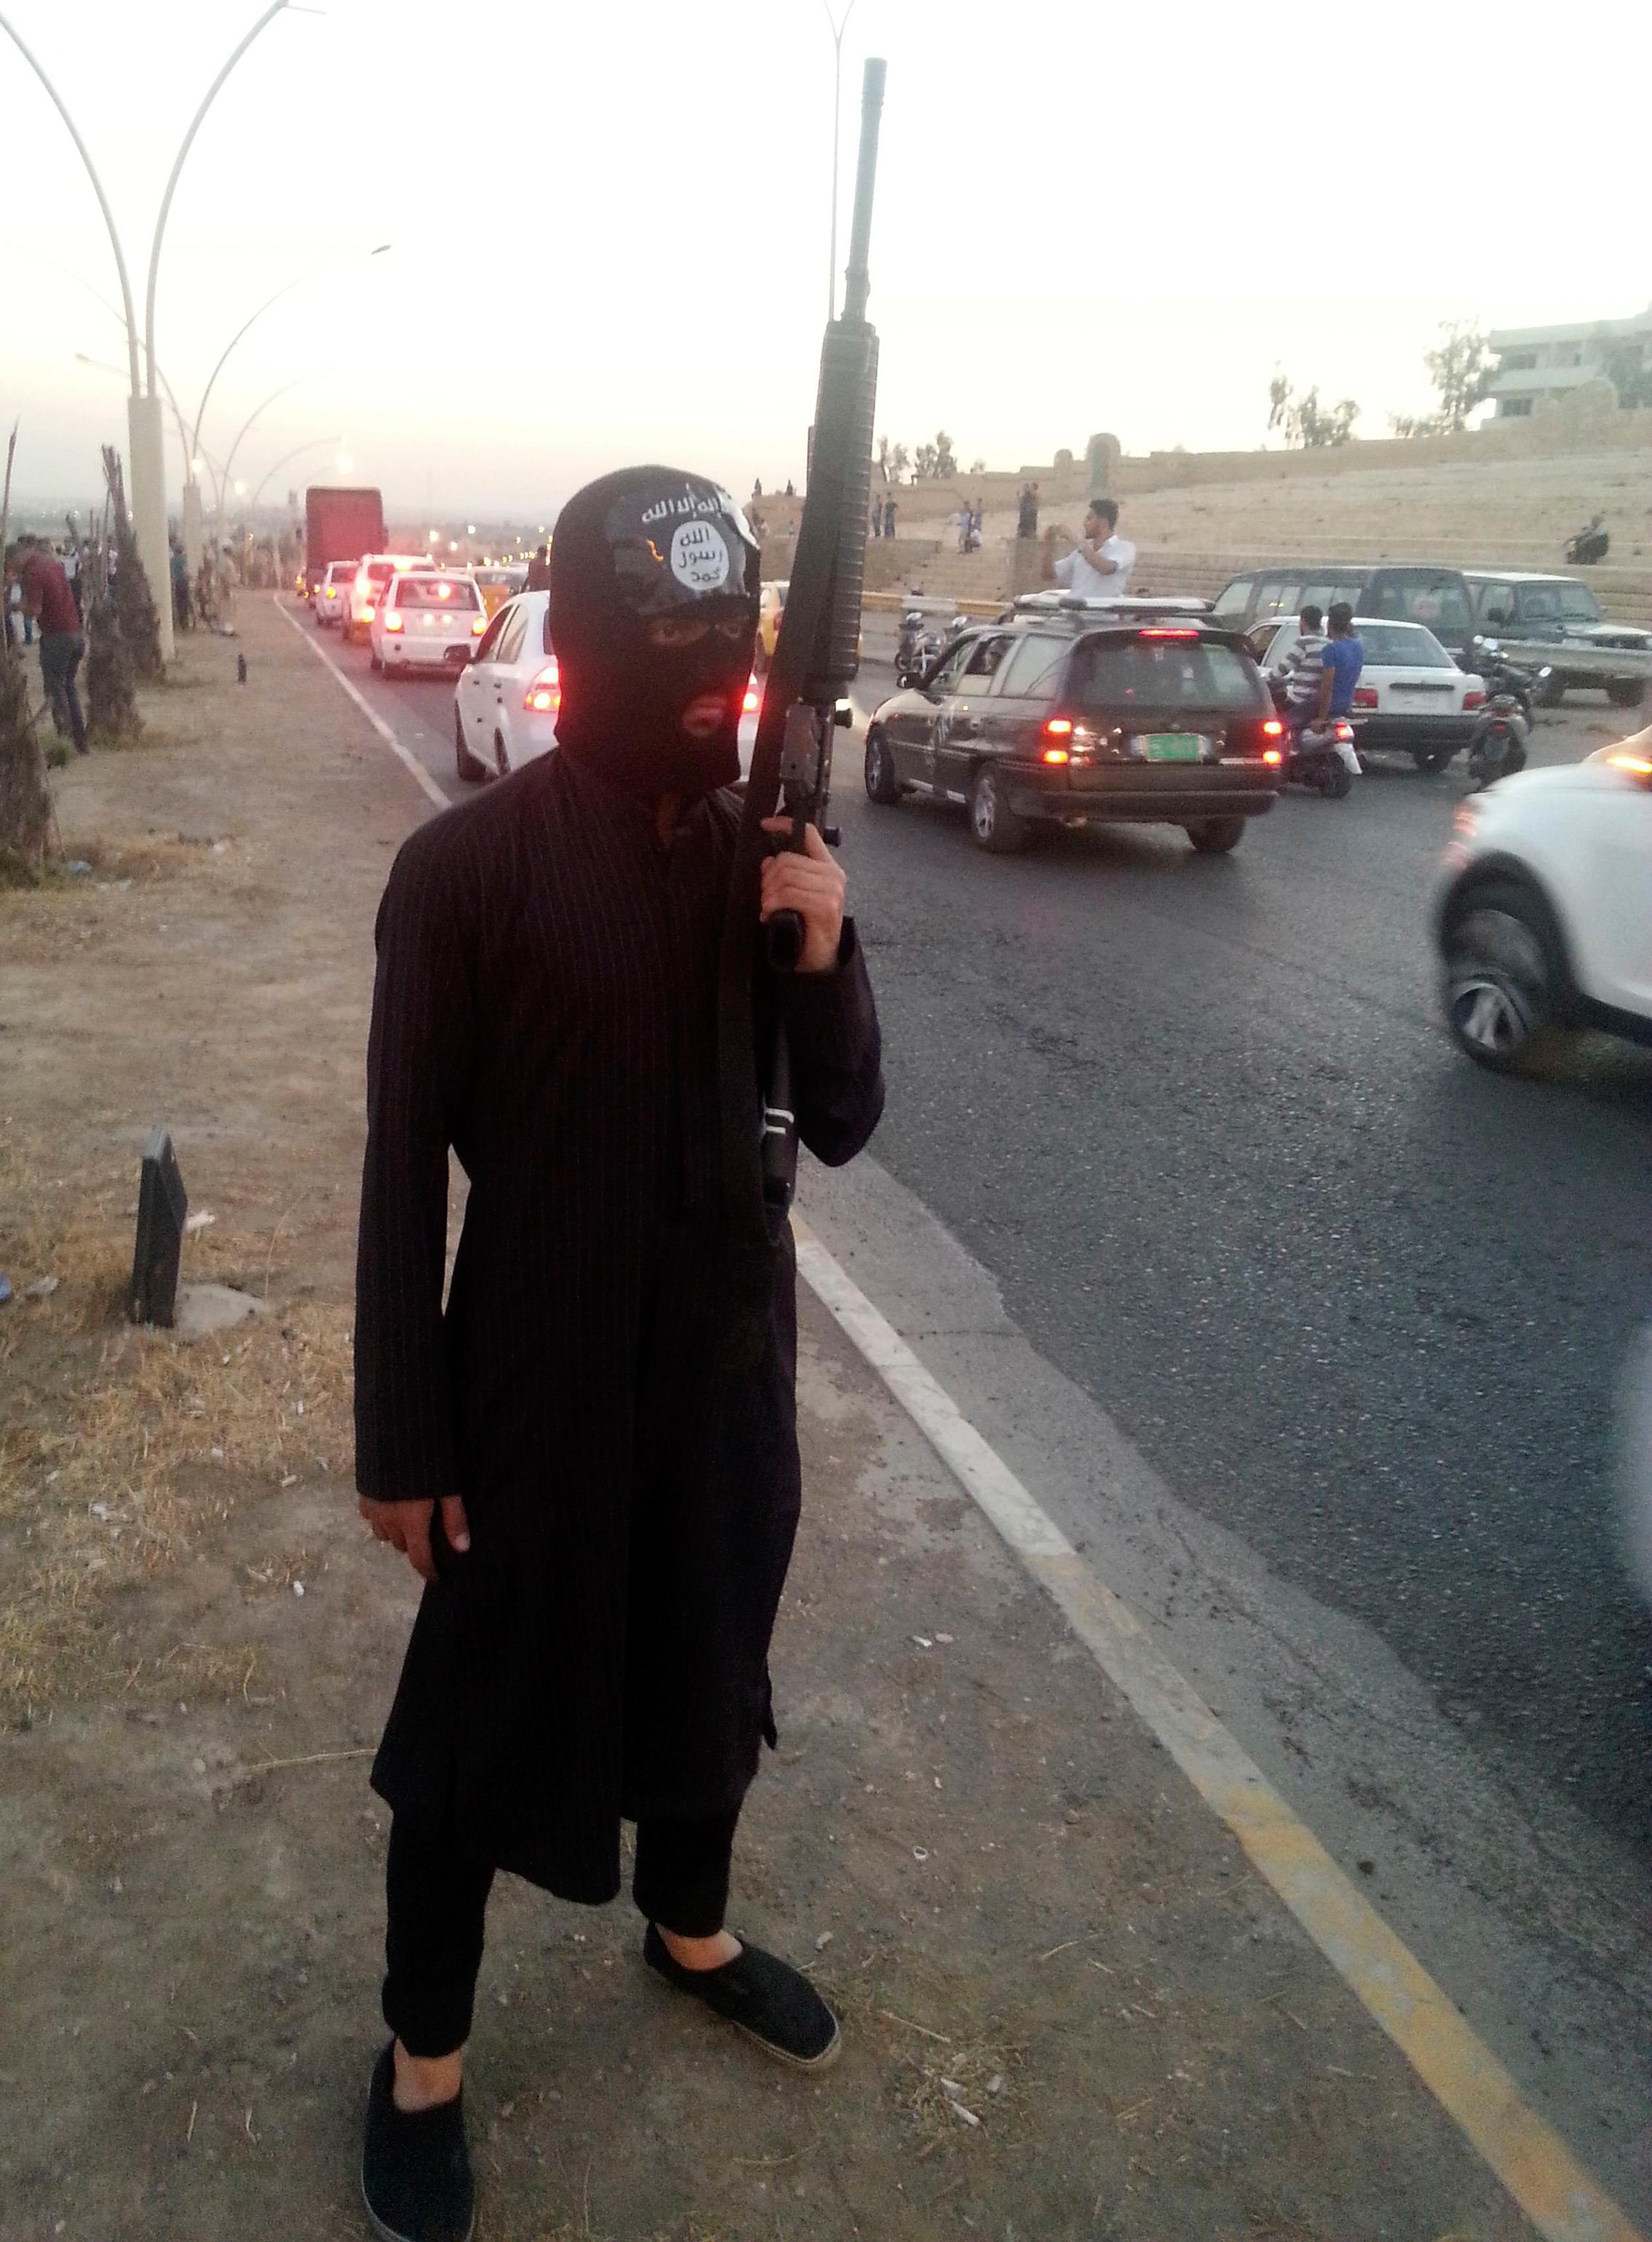 Image: An ISIS fighter stands guard with his weapon by the side of a street in the city of Mosul, June 23, 2014.